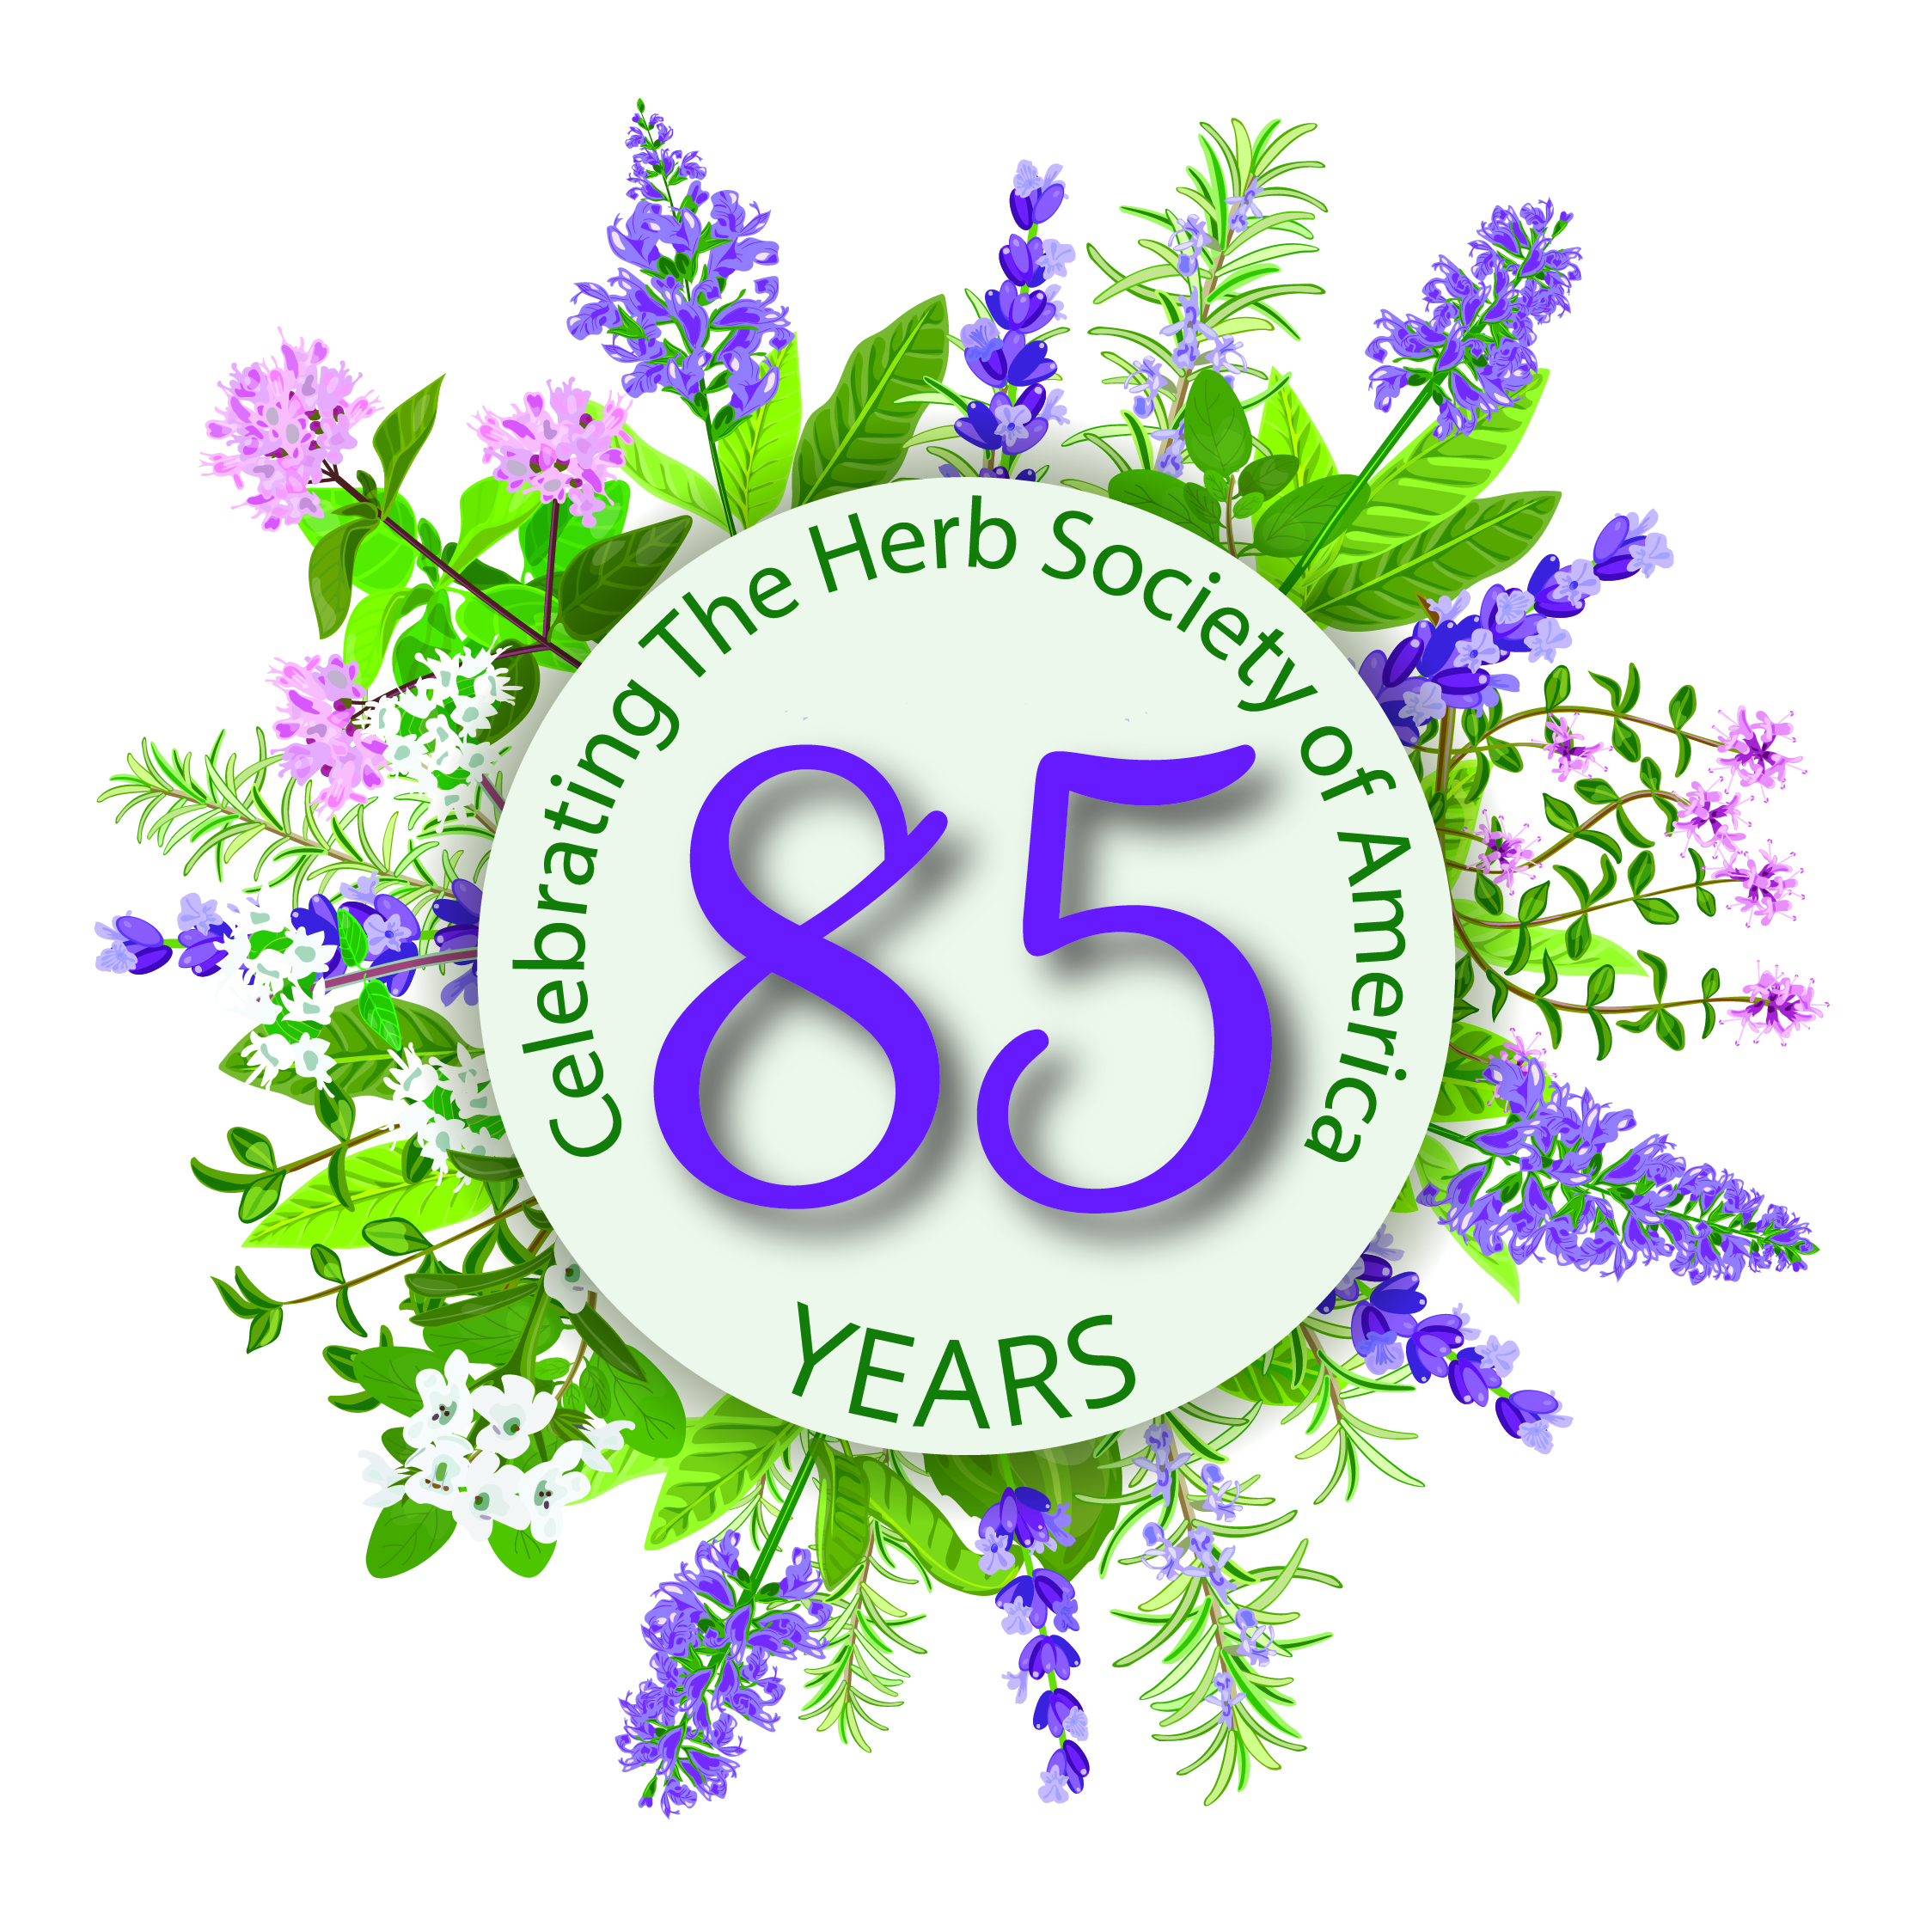 Celebrate 85 years!